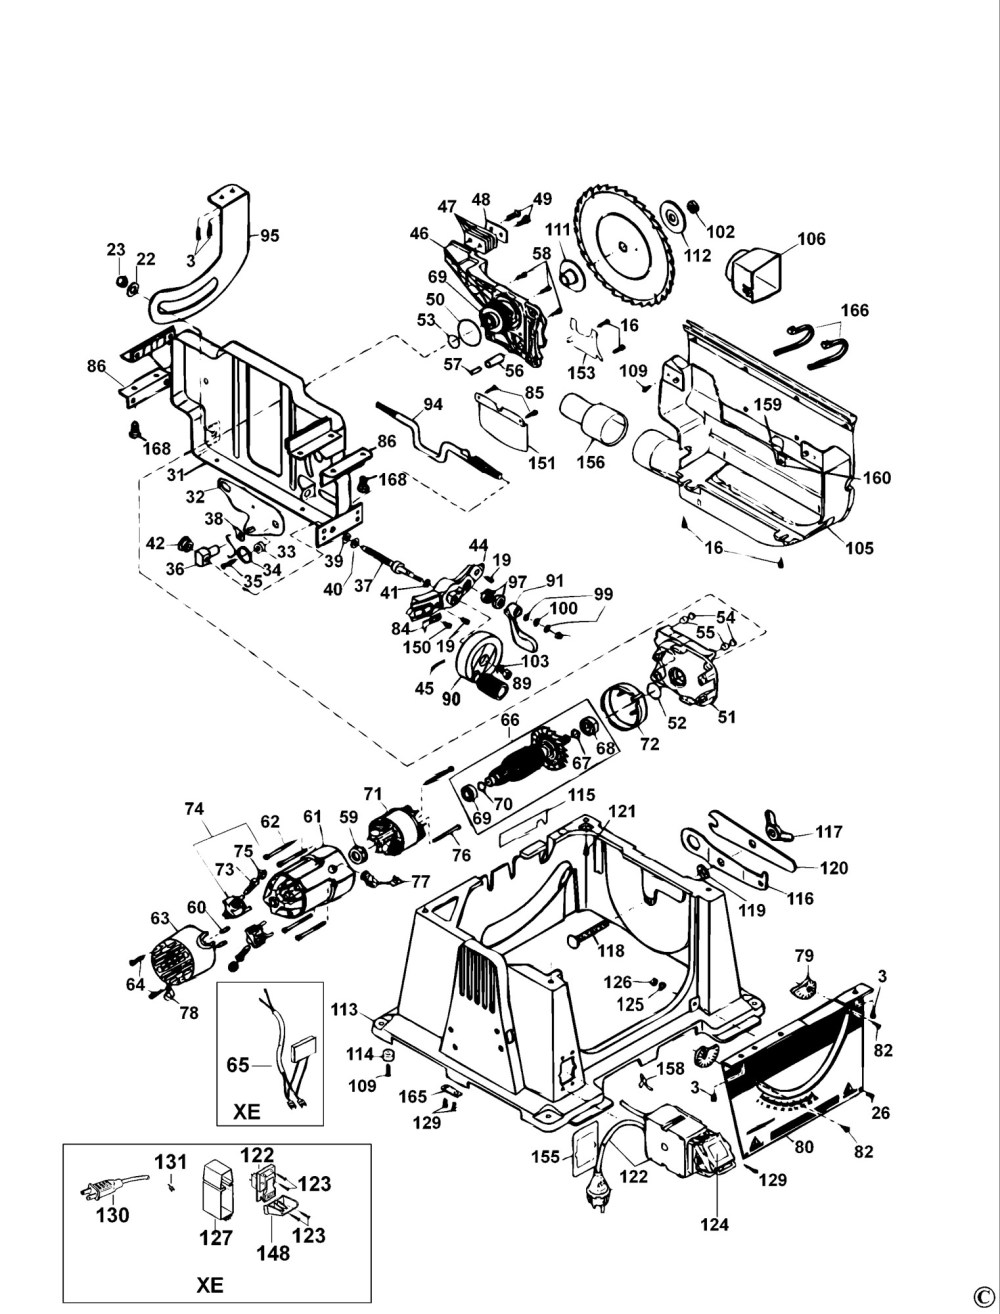 medium resolution of spares for dewalt dw744 table saw type 2 spare dw744 type 2 from dw744 table saw wiring diagram